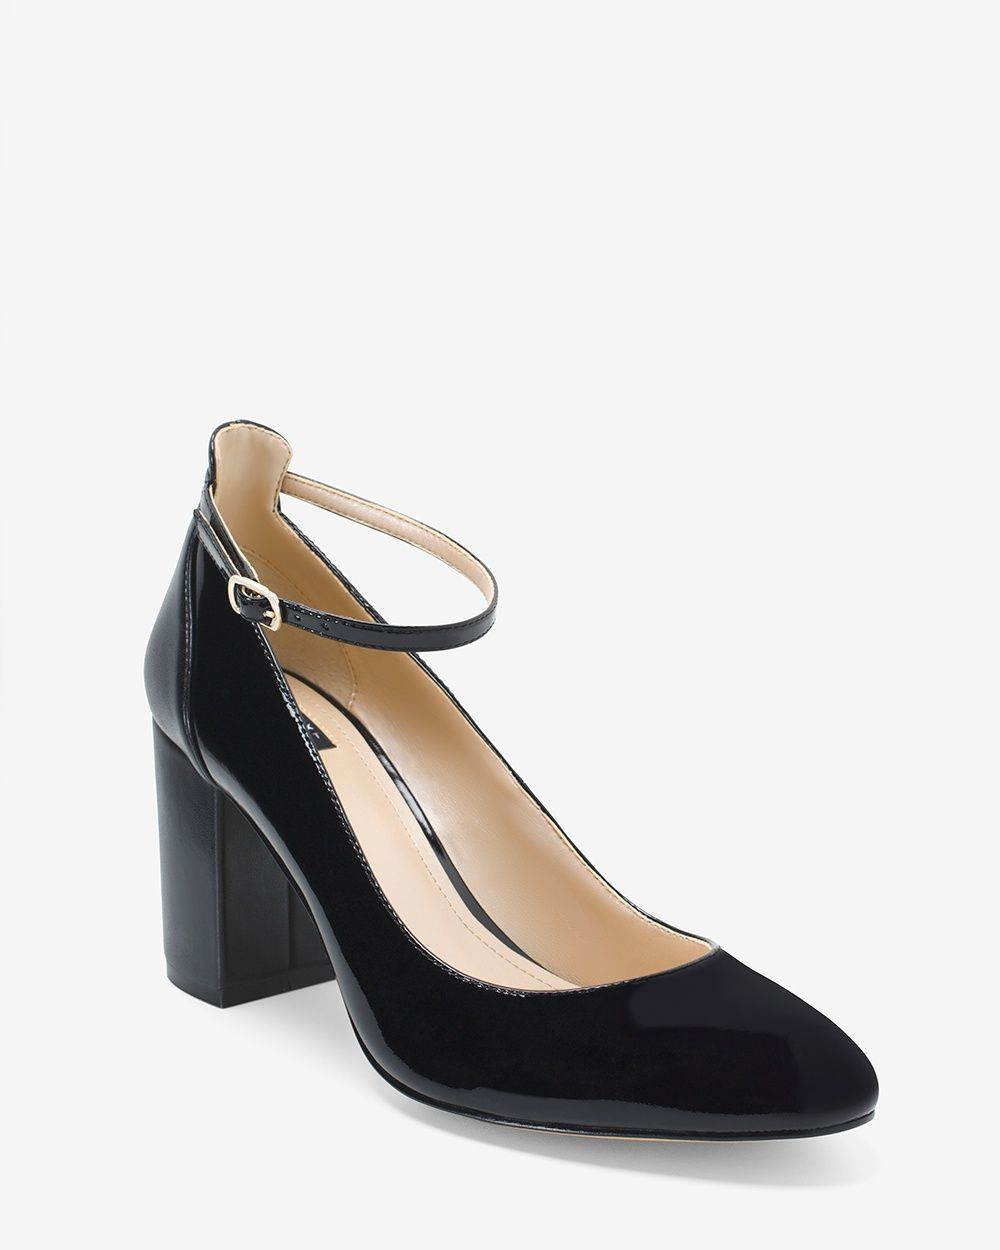 a95c2e4cdae Women s Black Patent Leather Chunky Heel Mary Janes by WHBM ...